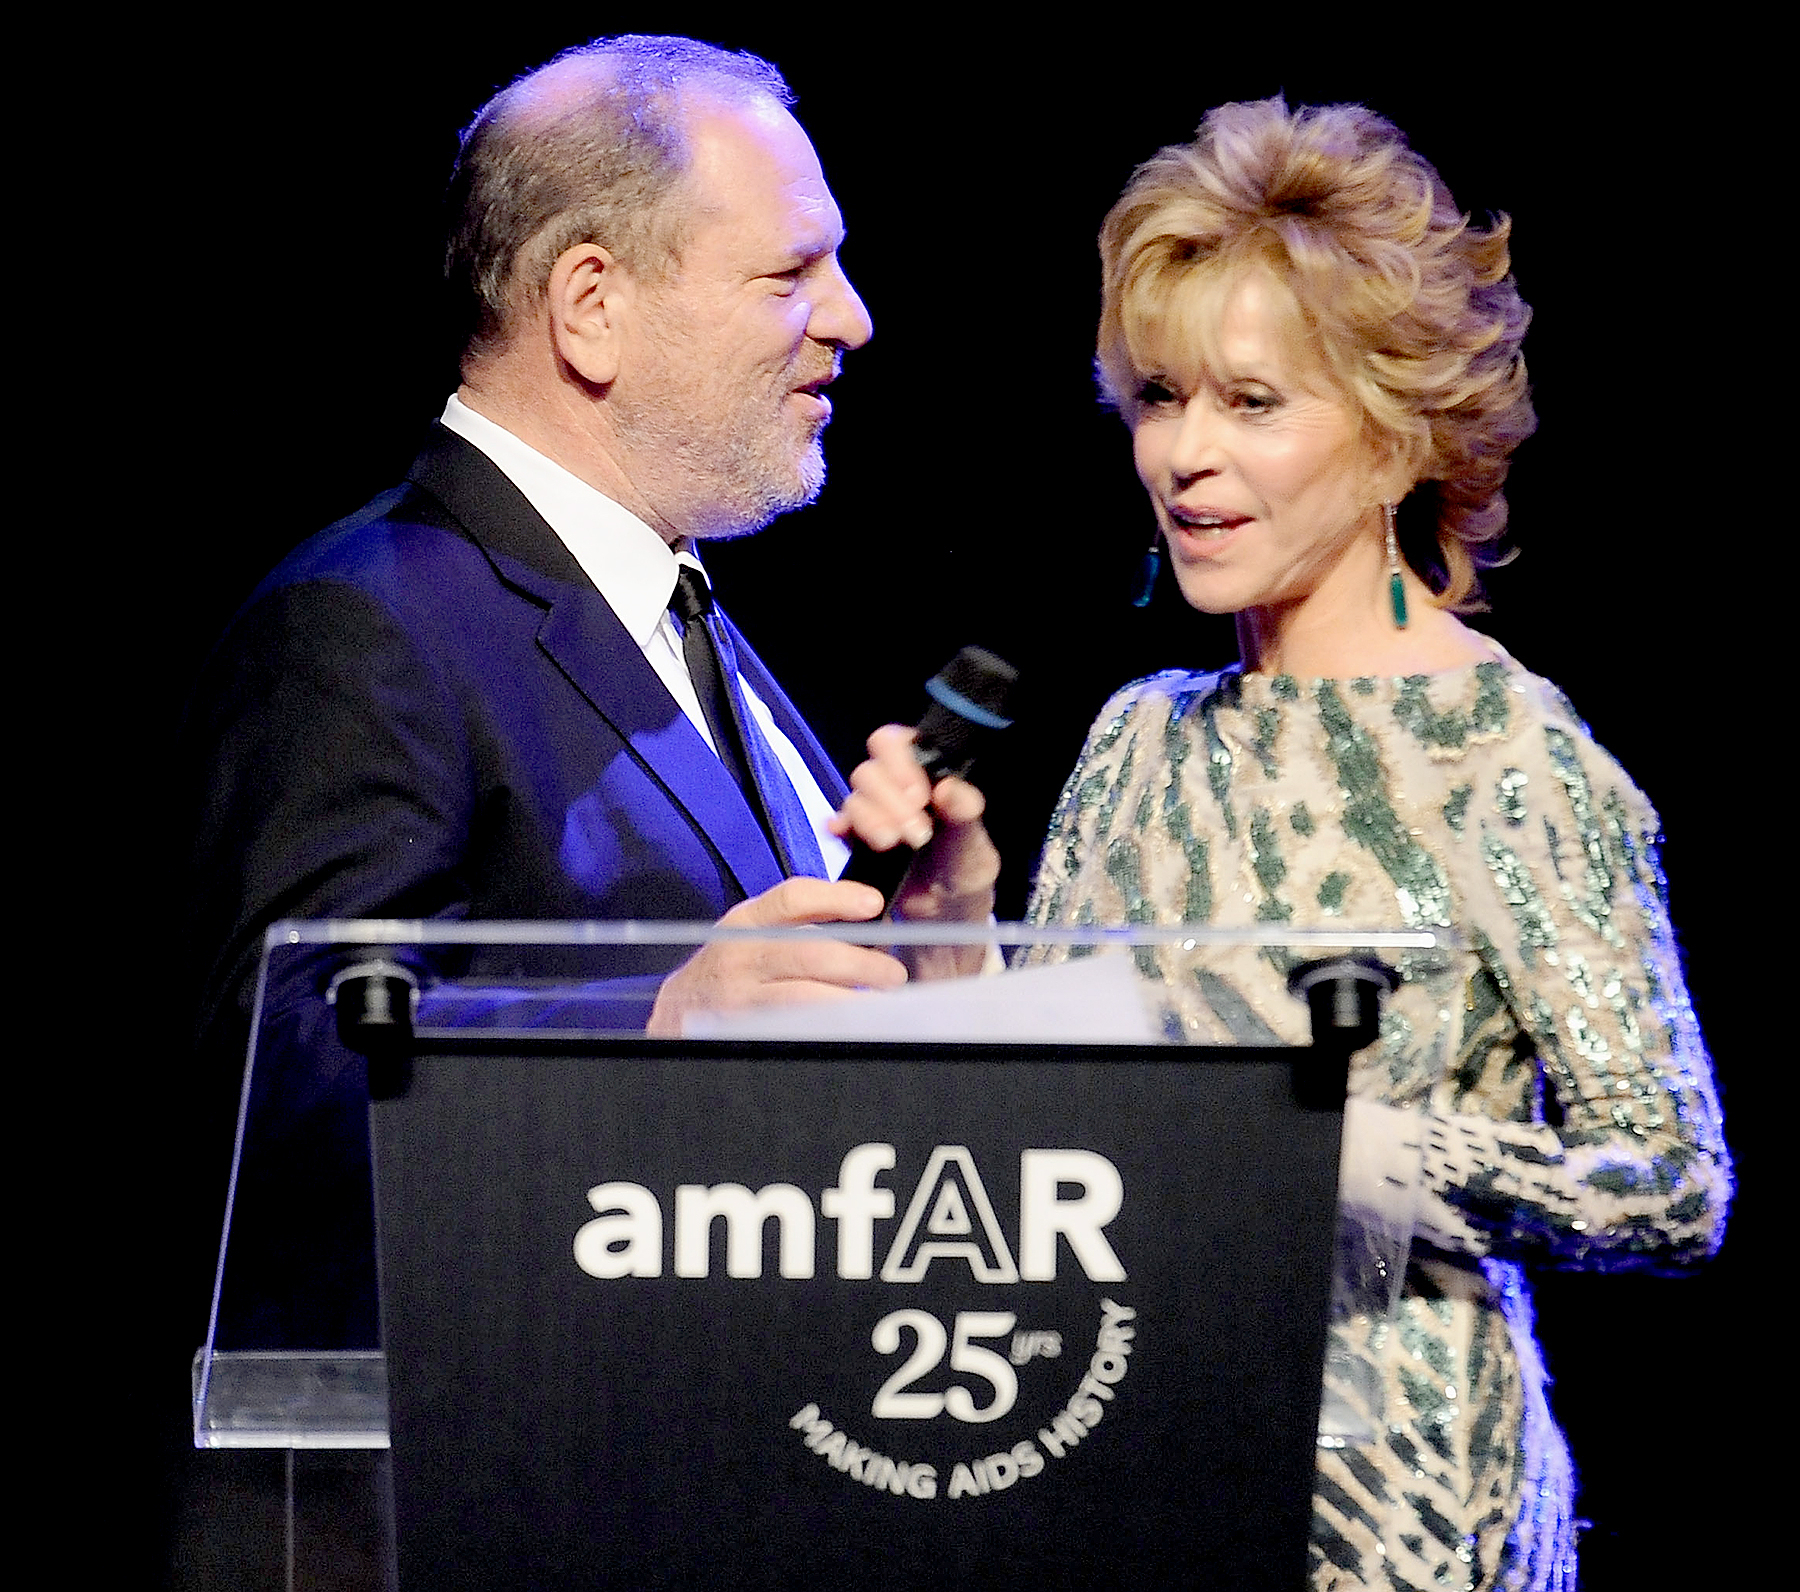 Harvey Weinstein and Jane Fonda onstage at amfAR's Cinema Against AIDS Gala during the 64th Annual Cannes Film Festival at Hotel Du Cap on May 19, 2011 in Antibes, France.